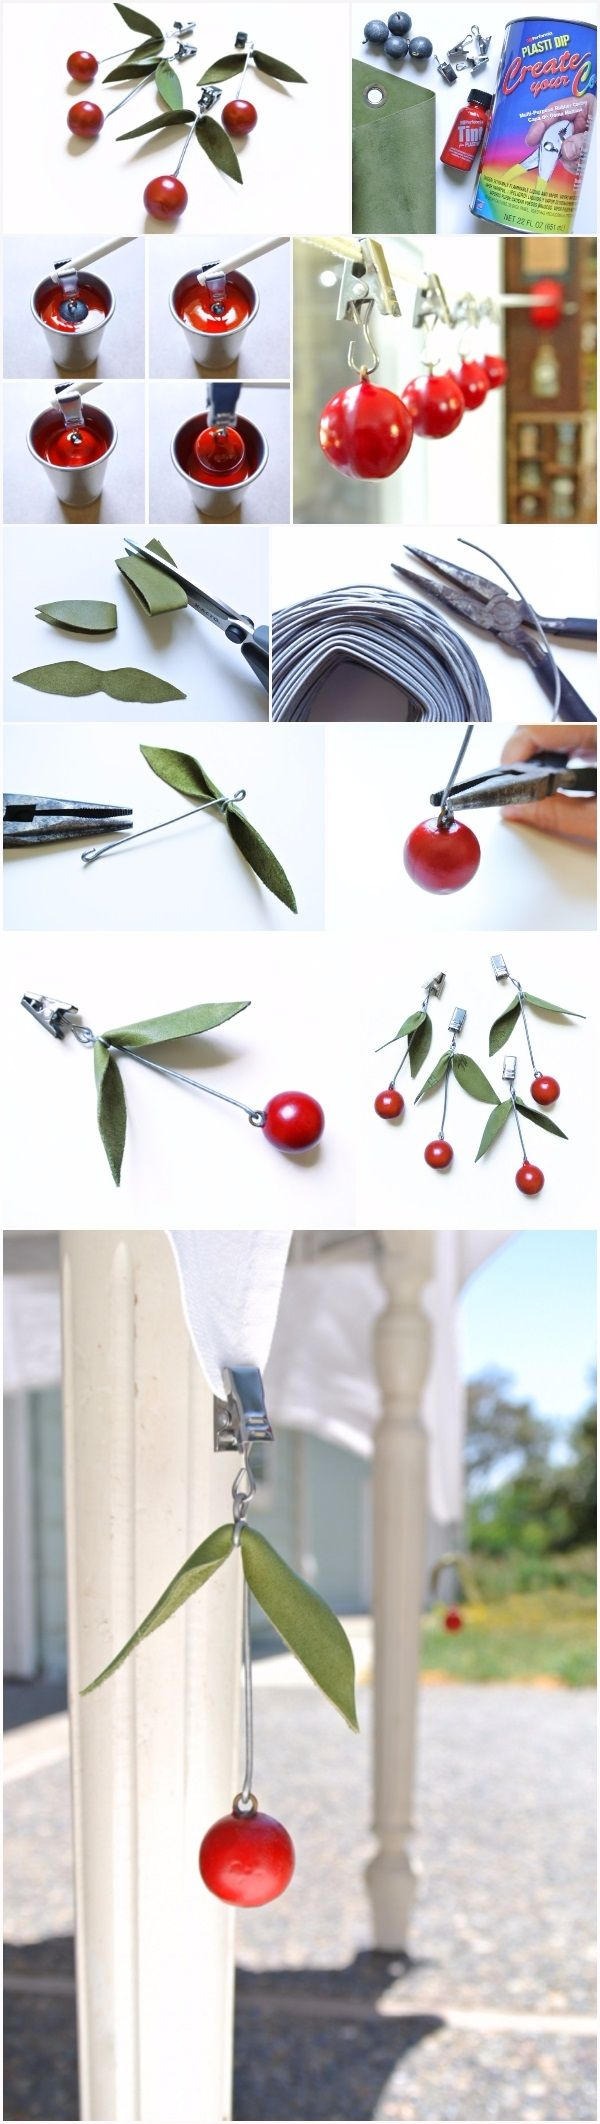 Summer Cherries Tablecloth Weights   DIY Fun Tips                                                                                                                                                                                 More